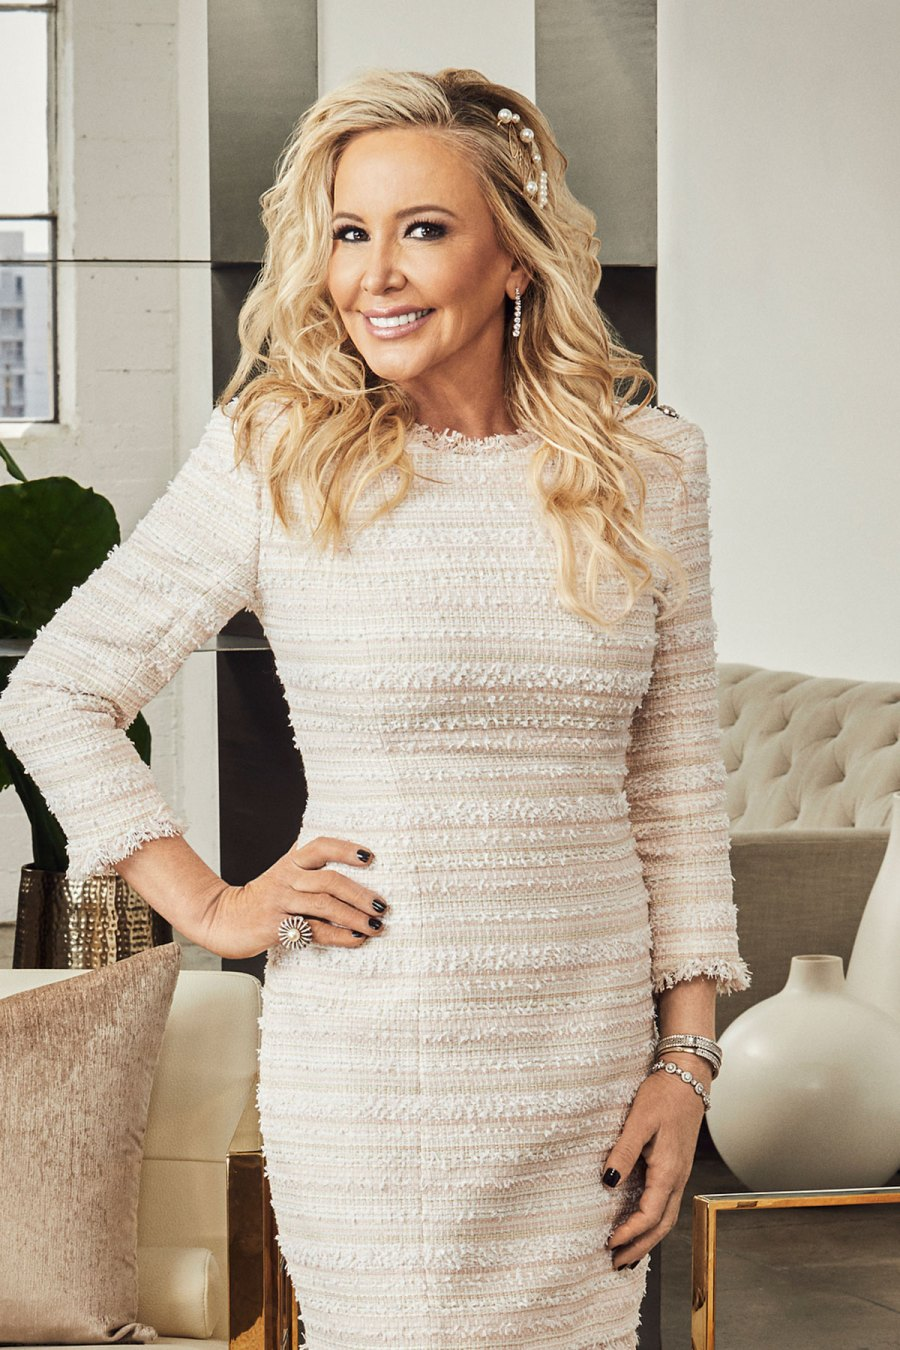 Shannon Beador Meghan King Adds Owens to Name as RHOC Stars React to Surprise Wedding